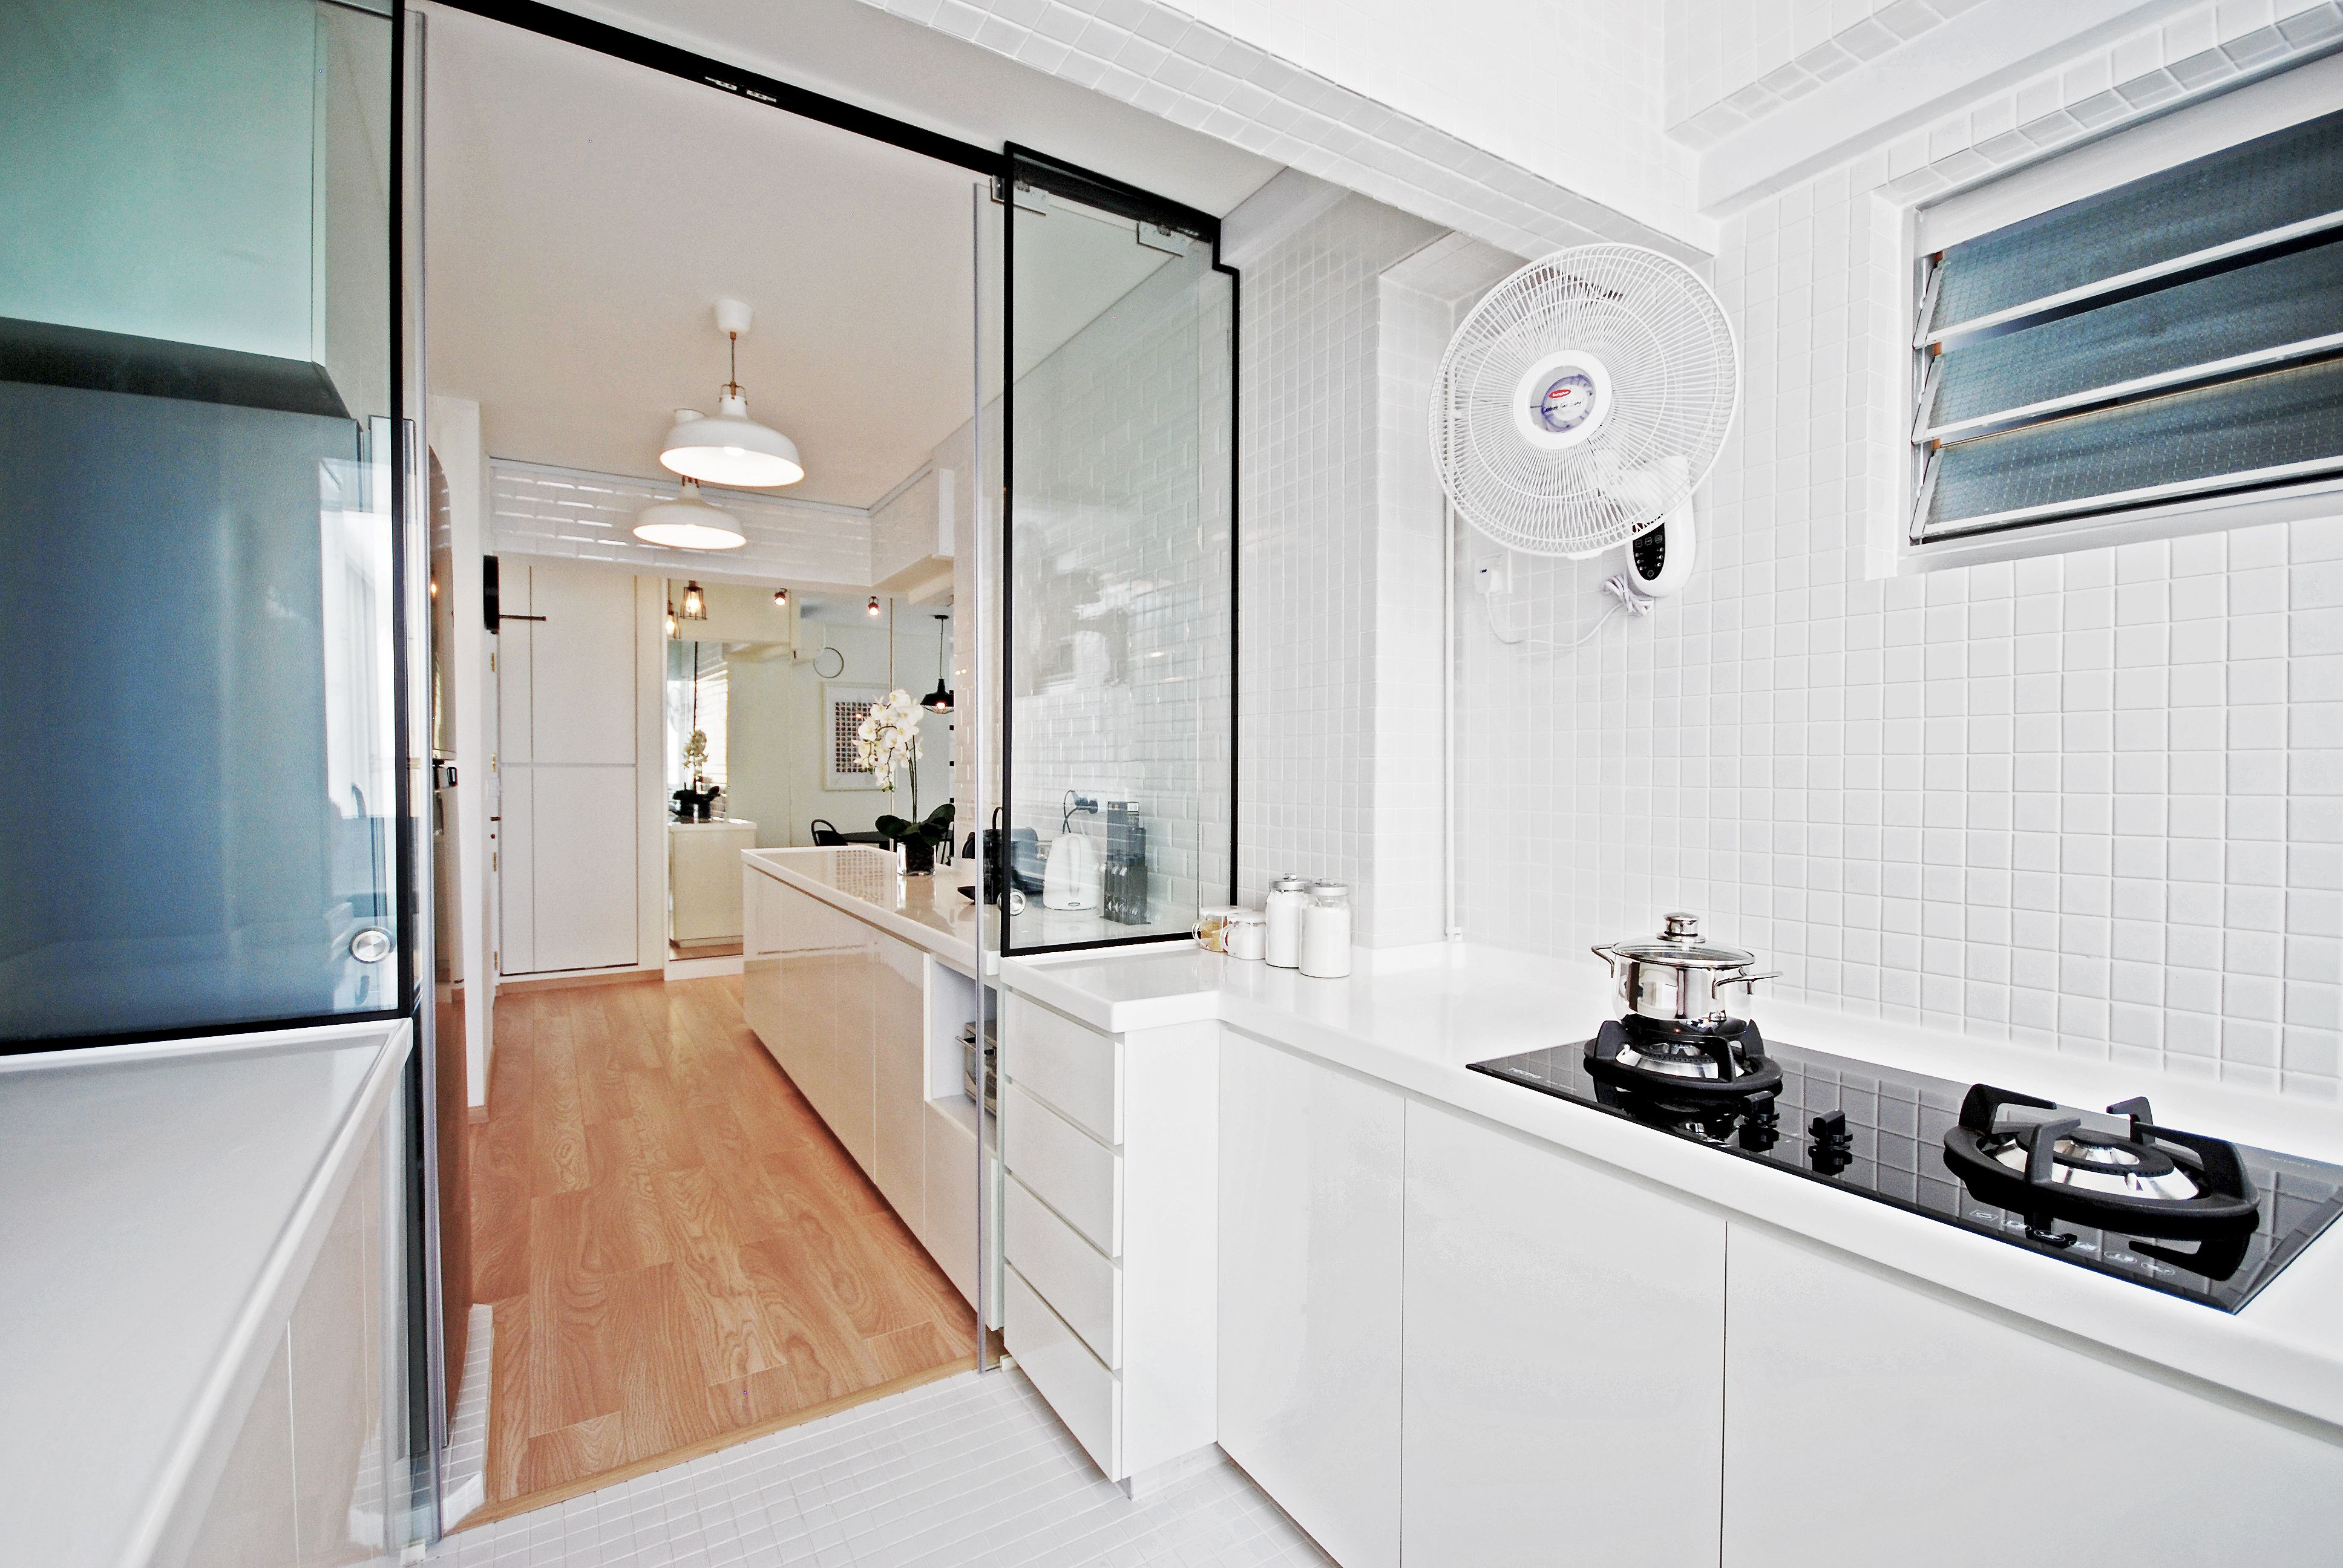 8 ways to do a semi open kitchen in your hdb semi open kitchen galley kitchens kitchen ideas on kitchen ideas singapore id=27336